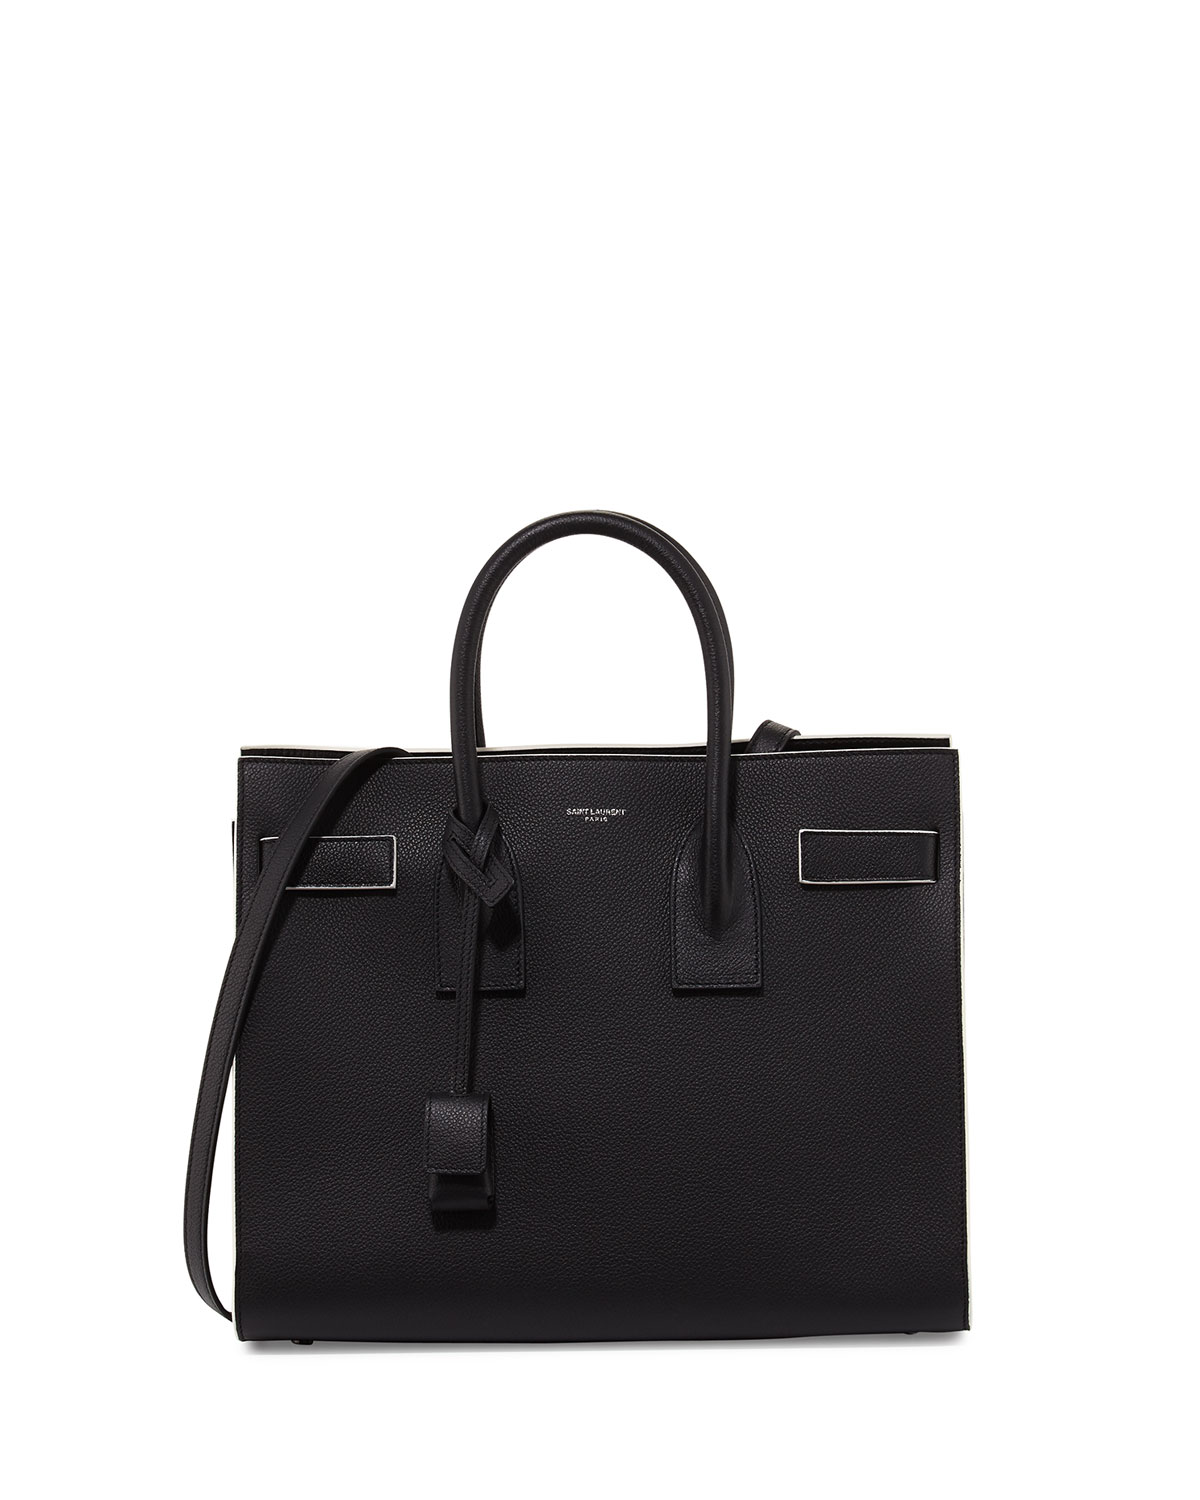 1ff94634b2f2c Saint Laurent Sac de Jour Small Satchel Bag